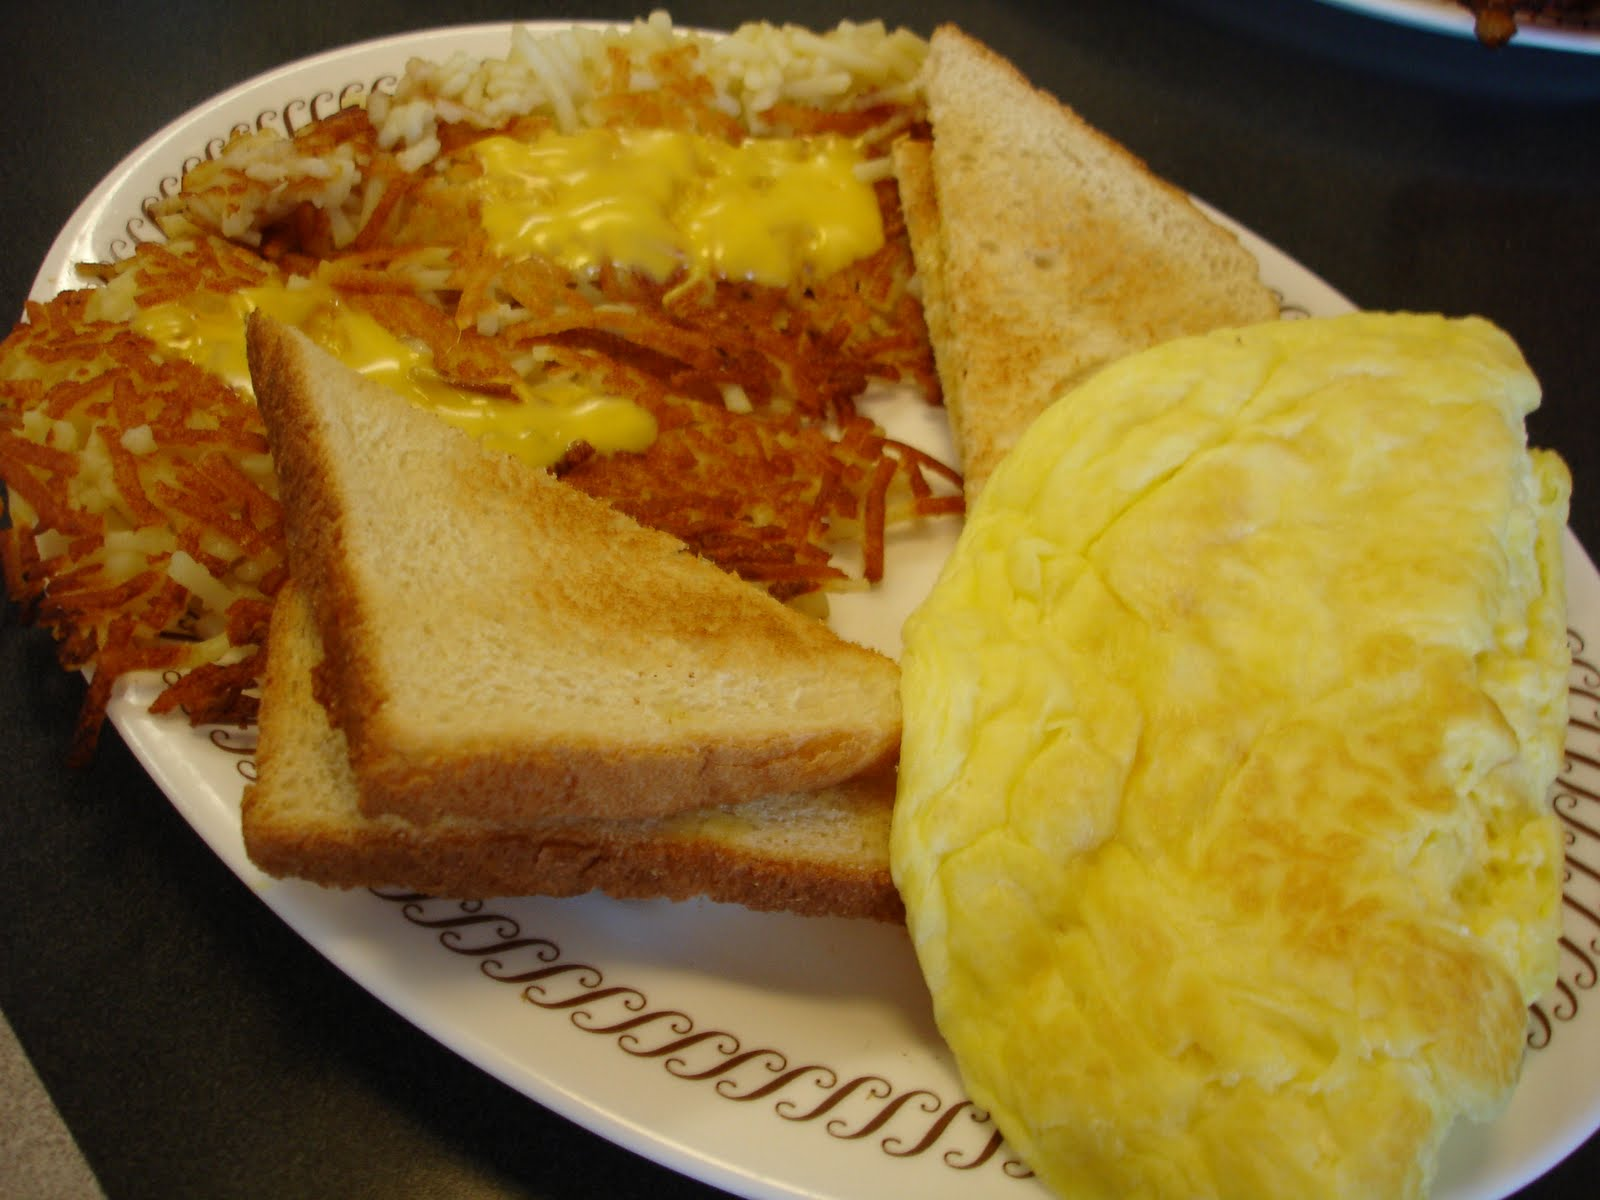 So many yummy foods so little time waffle house for Waffle house classic jukebox favorites